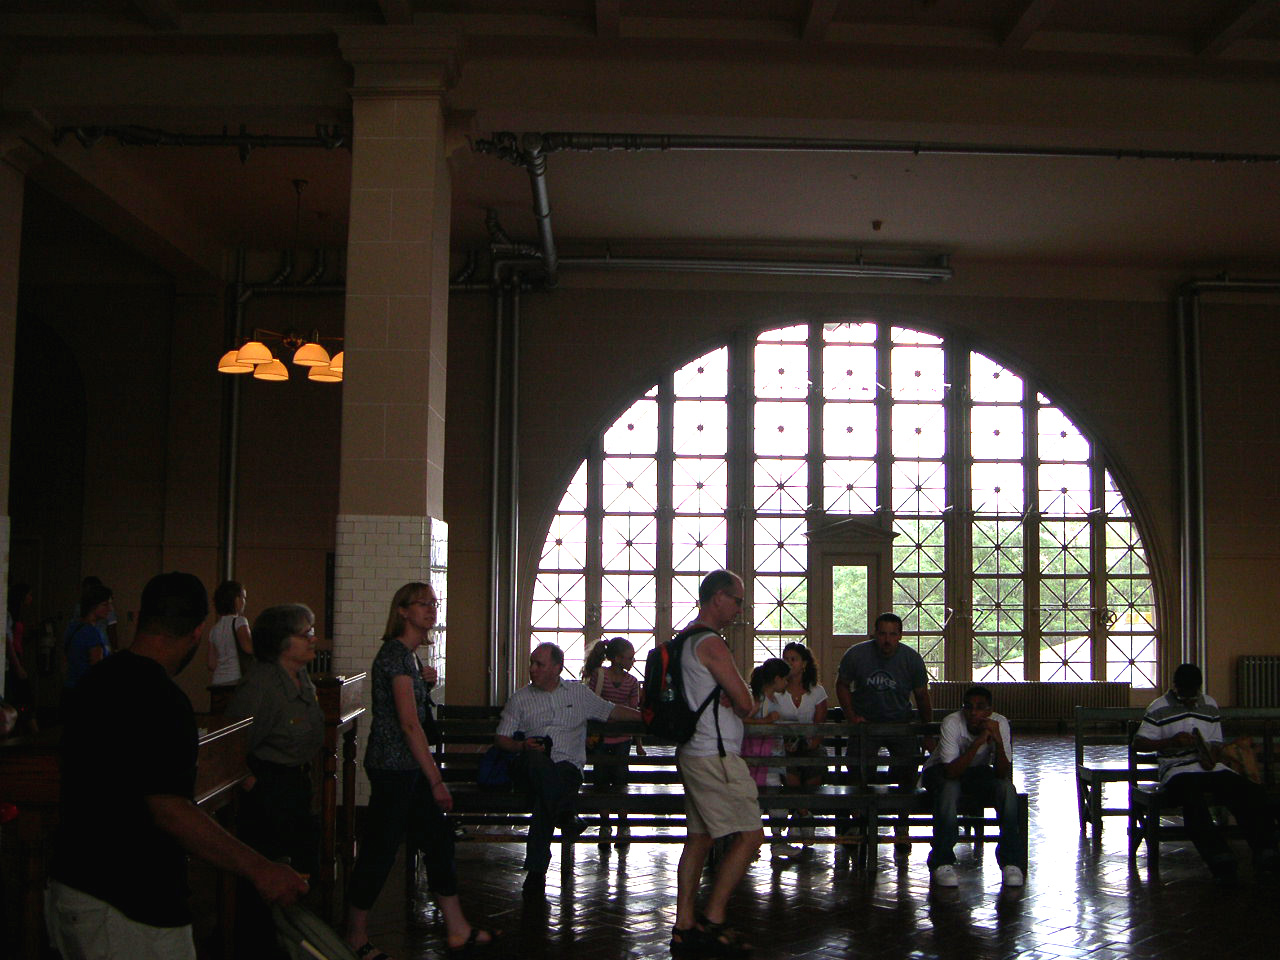 New York - Ellis Island, 2008